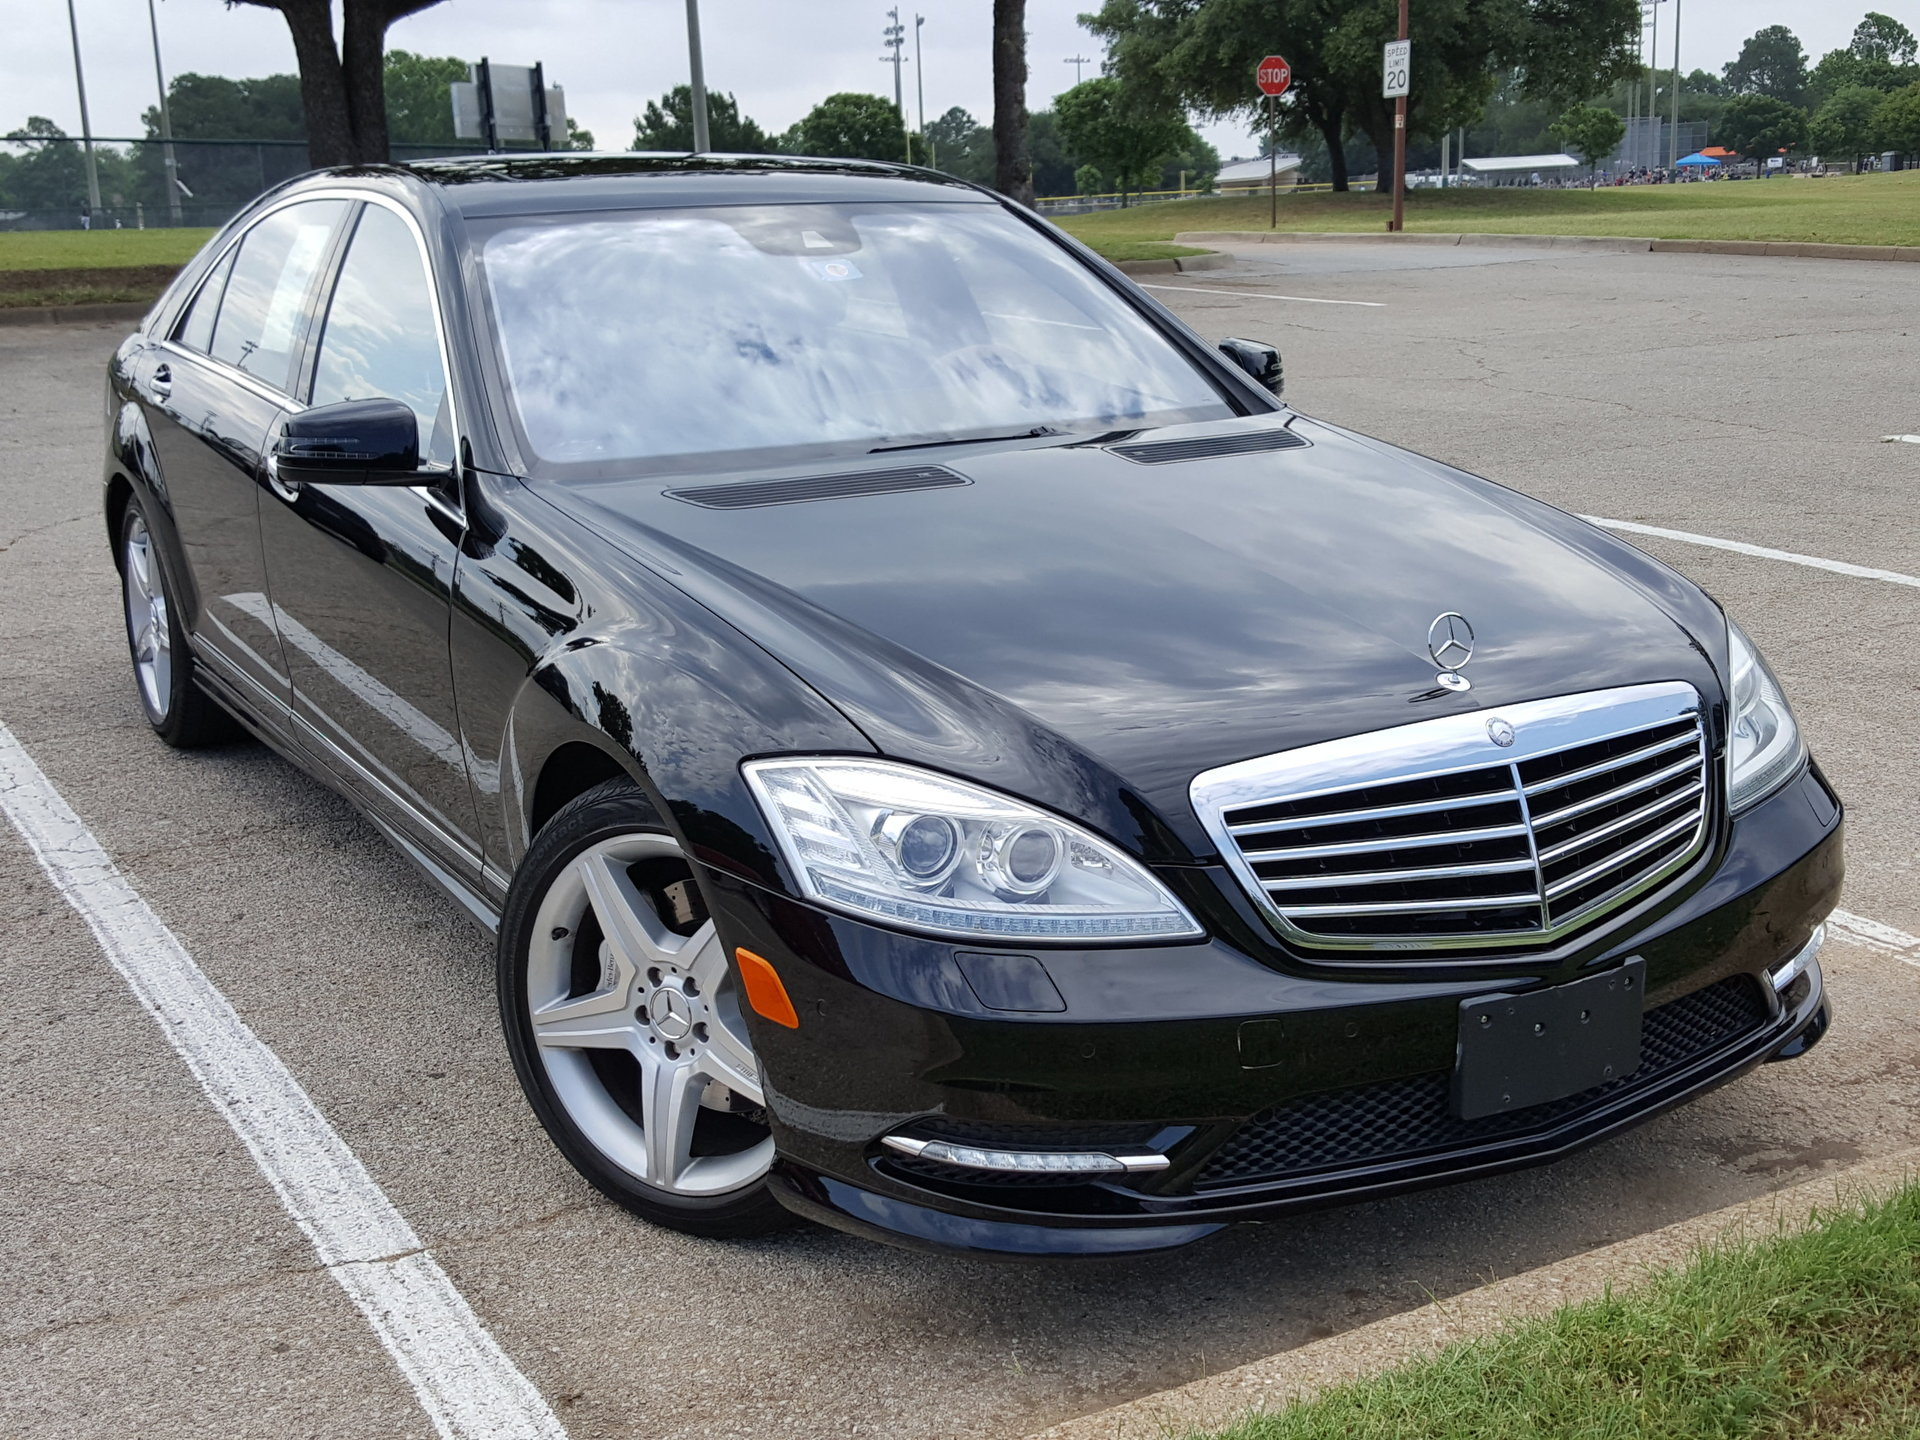 mercedes silver on auctions left title in copart view of amg en nj sale cert s auto benz somerville for carfinder online lot